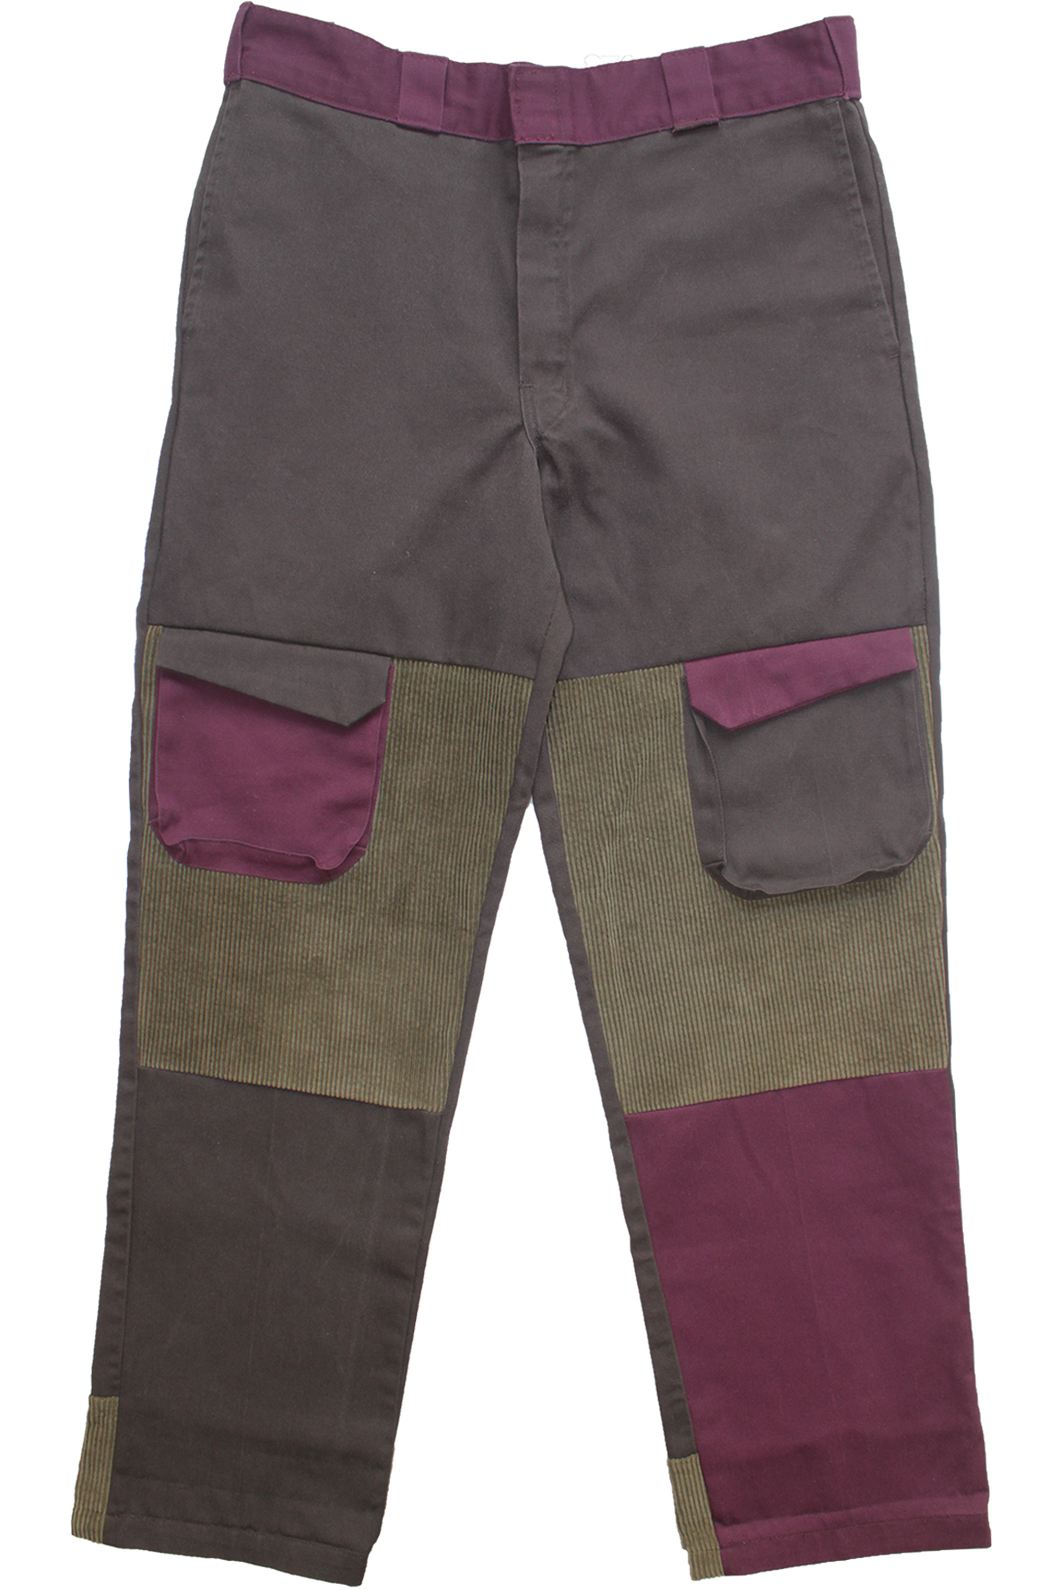 BROWN CARGO DICKIES 34